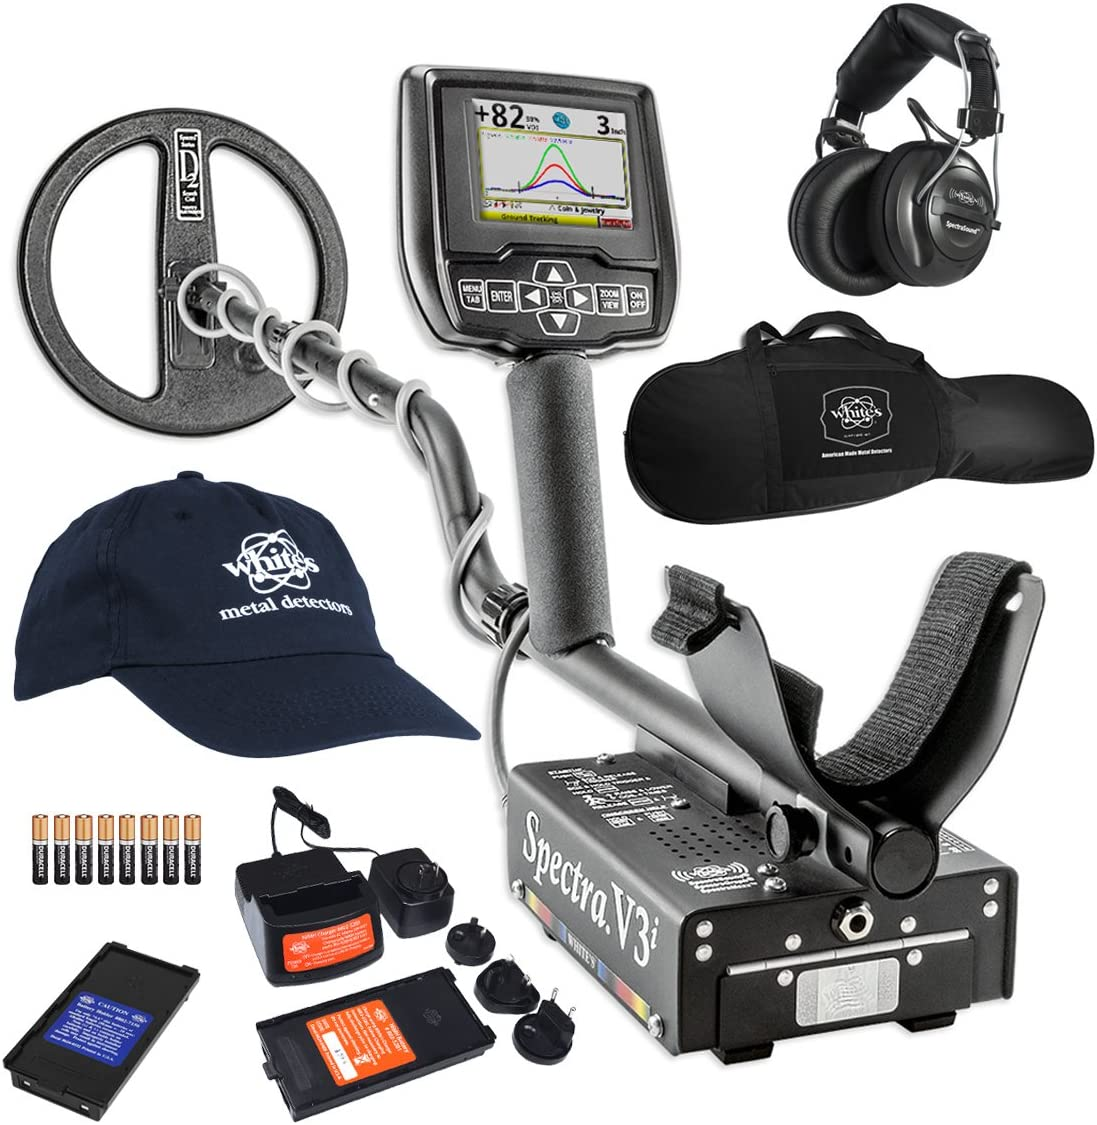 White's Spectra V3i HP Metal Detector with Padded Gun Style Carry Bag and Baseball Cap - 800-0329-HP